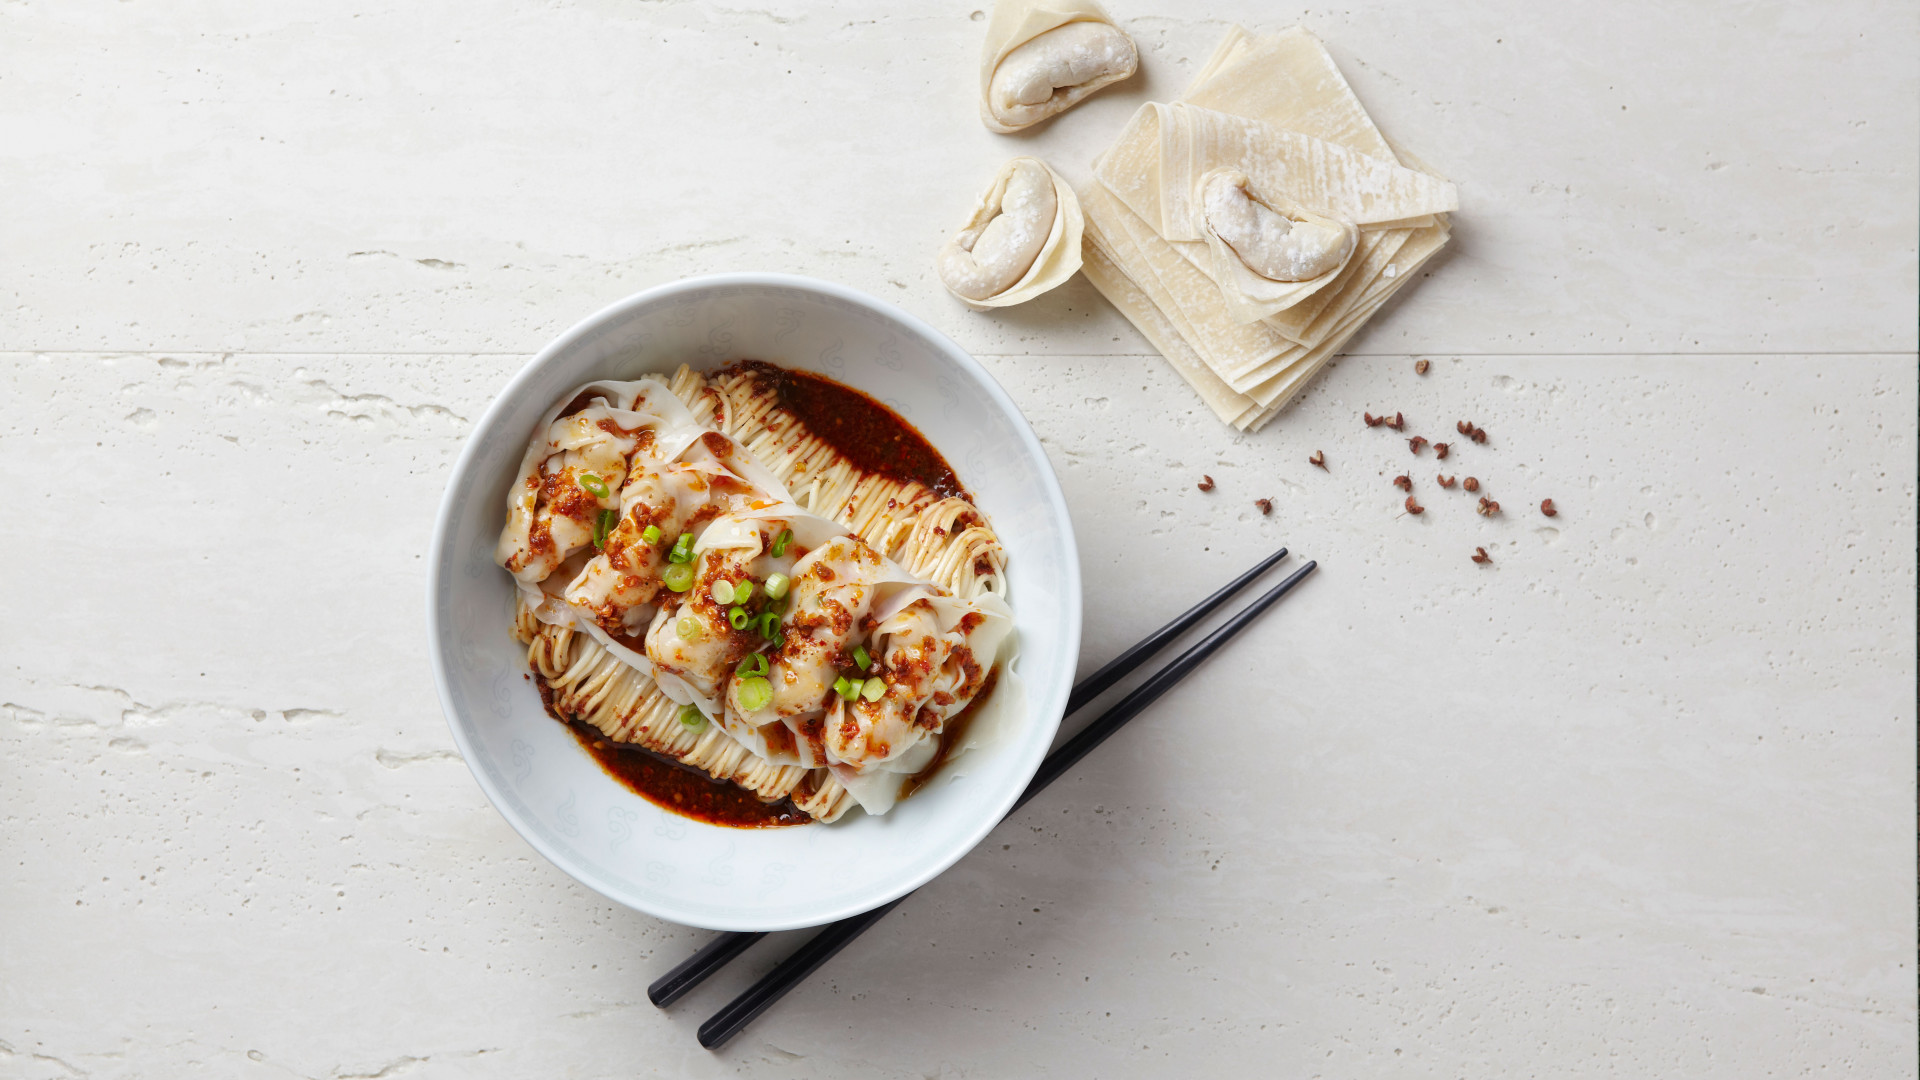 Pork and prawn wontons with noodles in Sichuan sauce